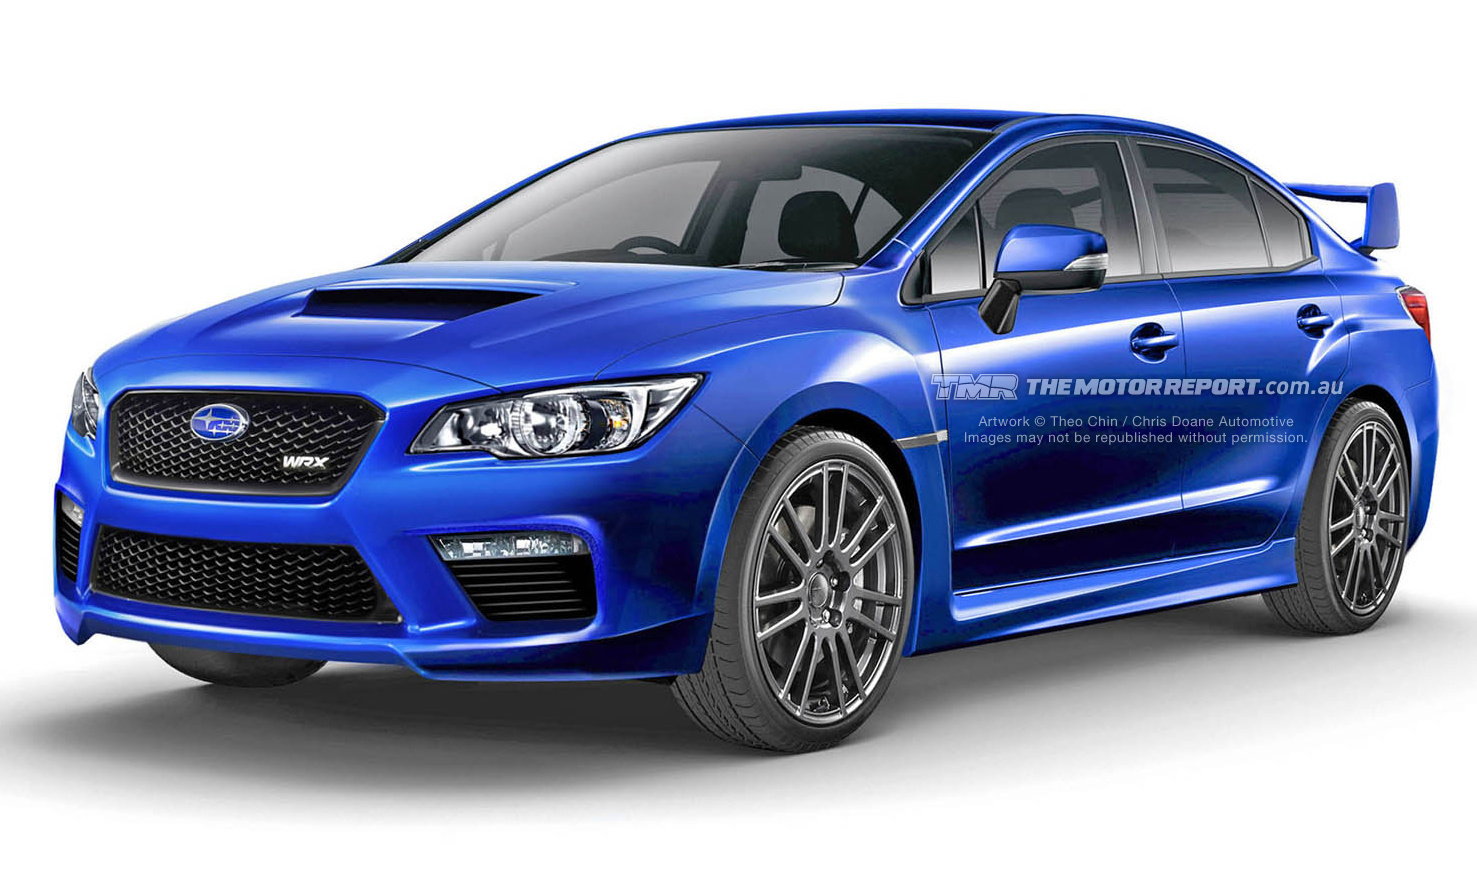 subaru 2014 subaru impreza wrx 2014 subaru impreza wrx image 10. Black Bedroom Furniture Sets. Home Design Ideas